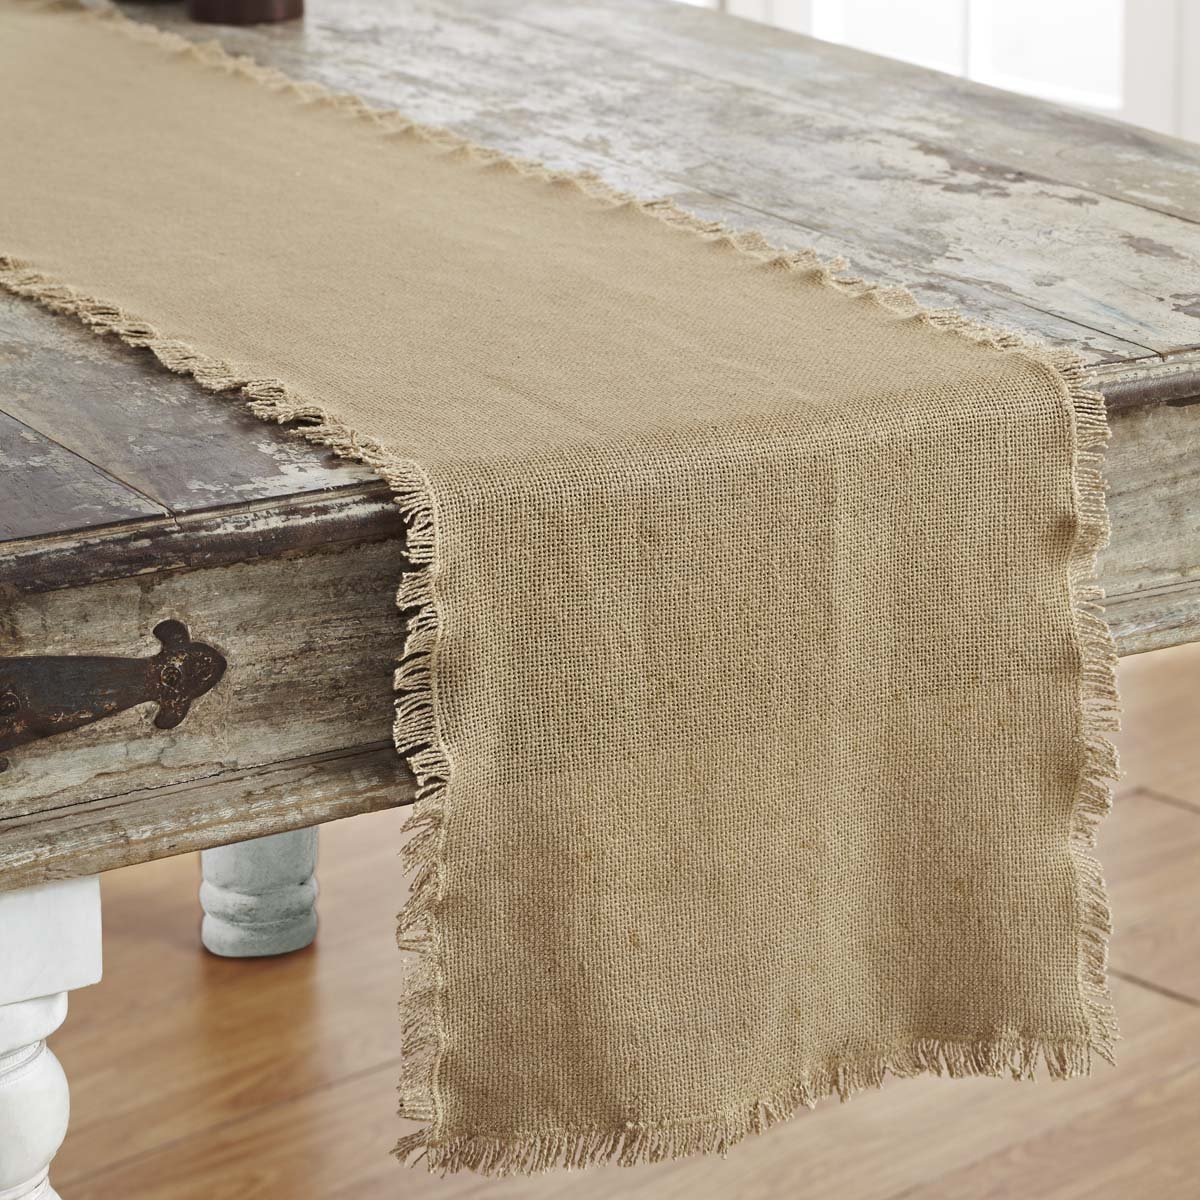 Burlap Natural Fringed Runner.